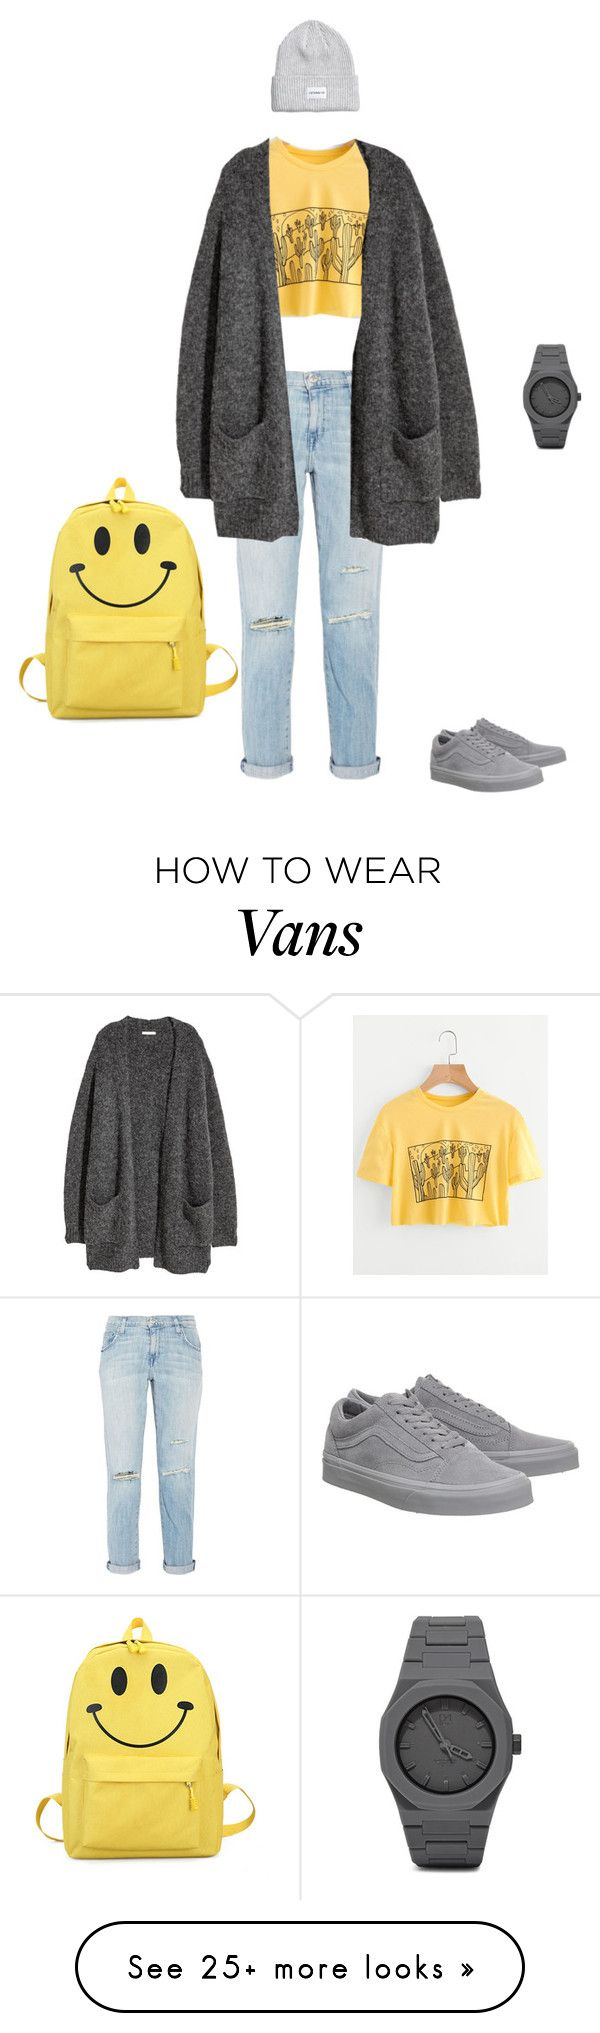 """""""Untitled #3"""" by souperiority on Polyvore featuring Current/Elliott, H&M, Vans, CC and MyFaveTshirt"""